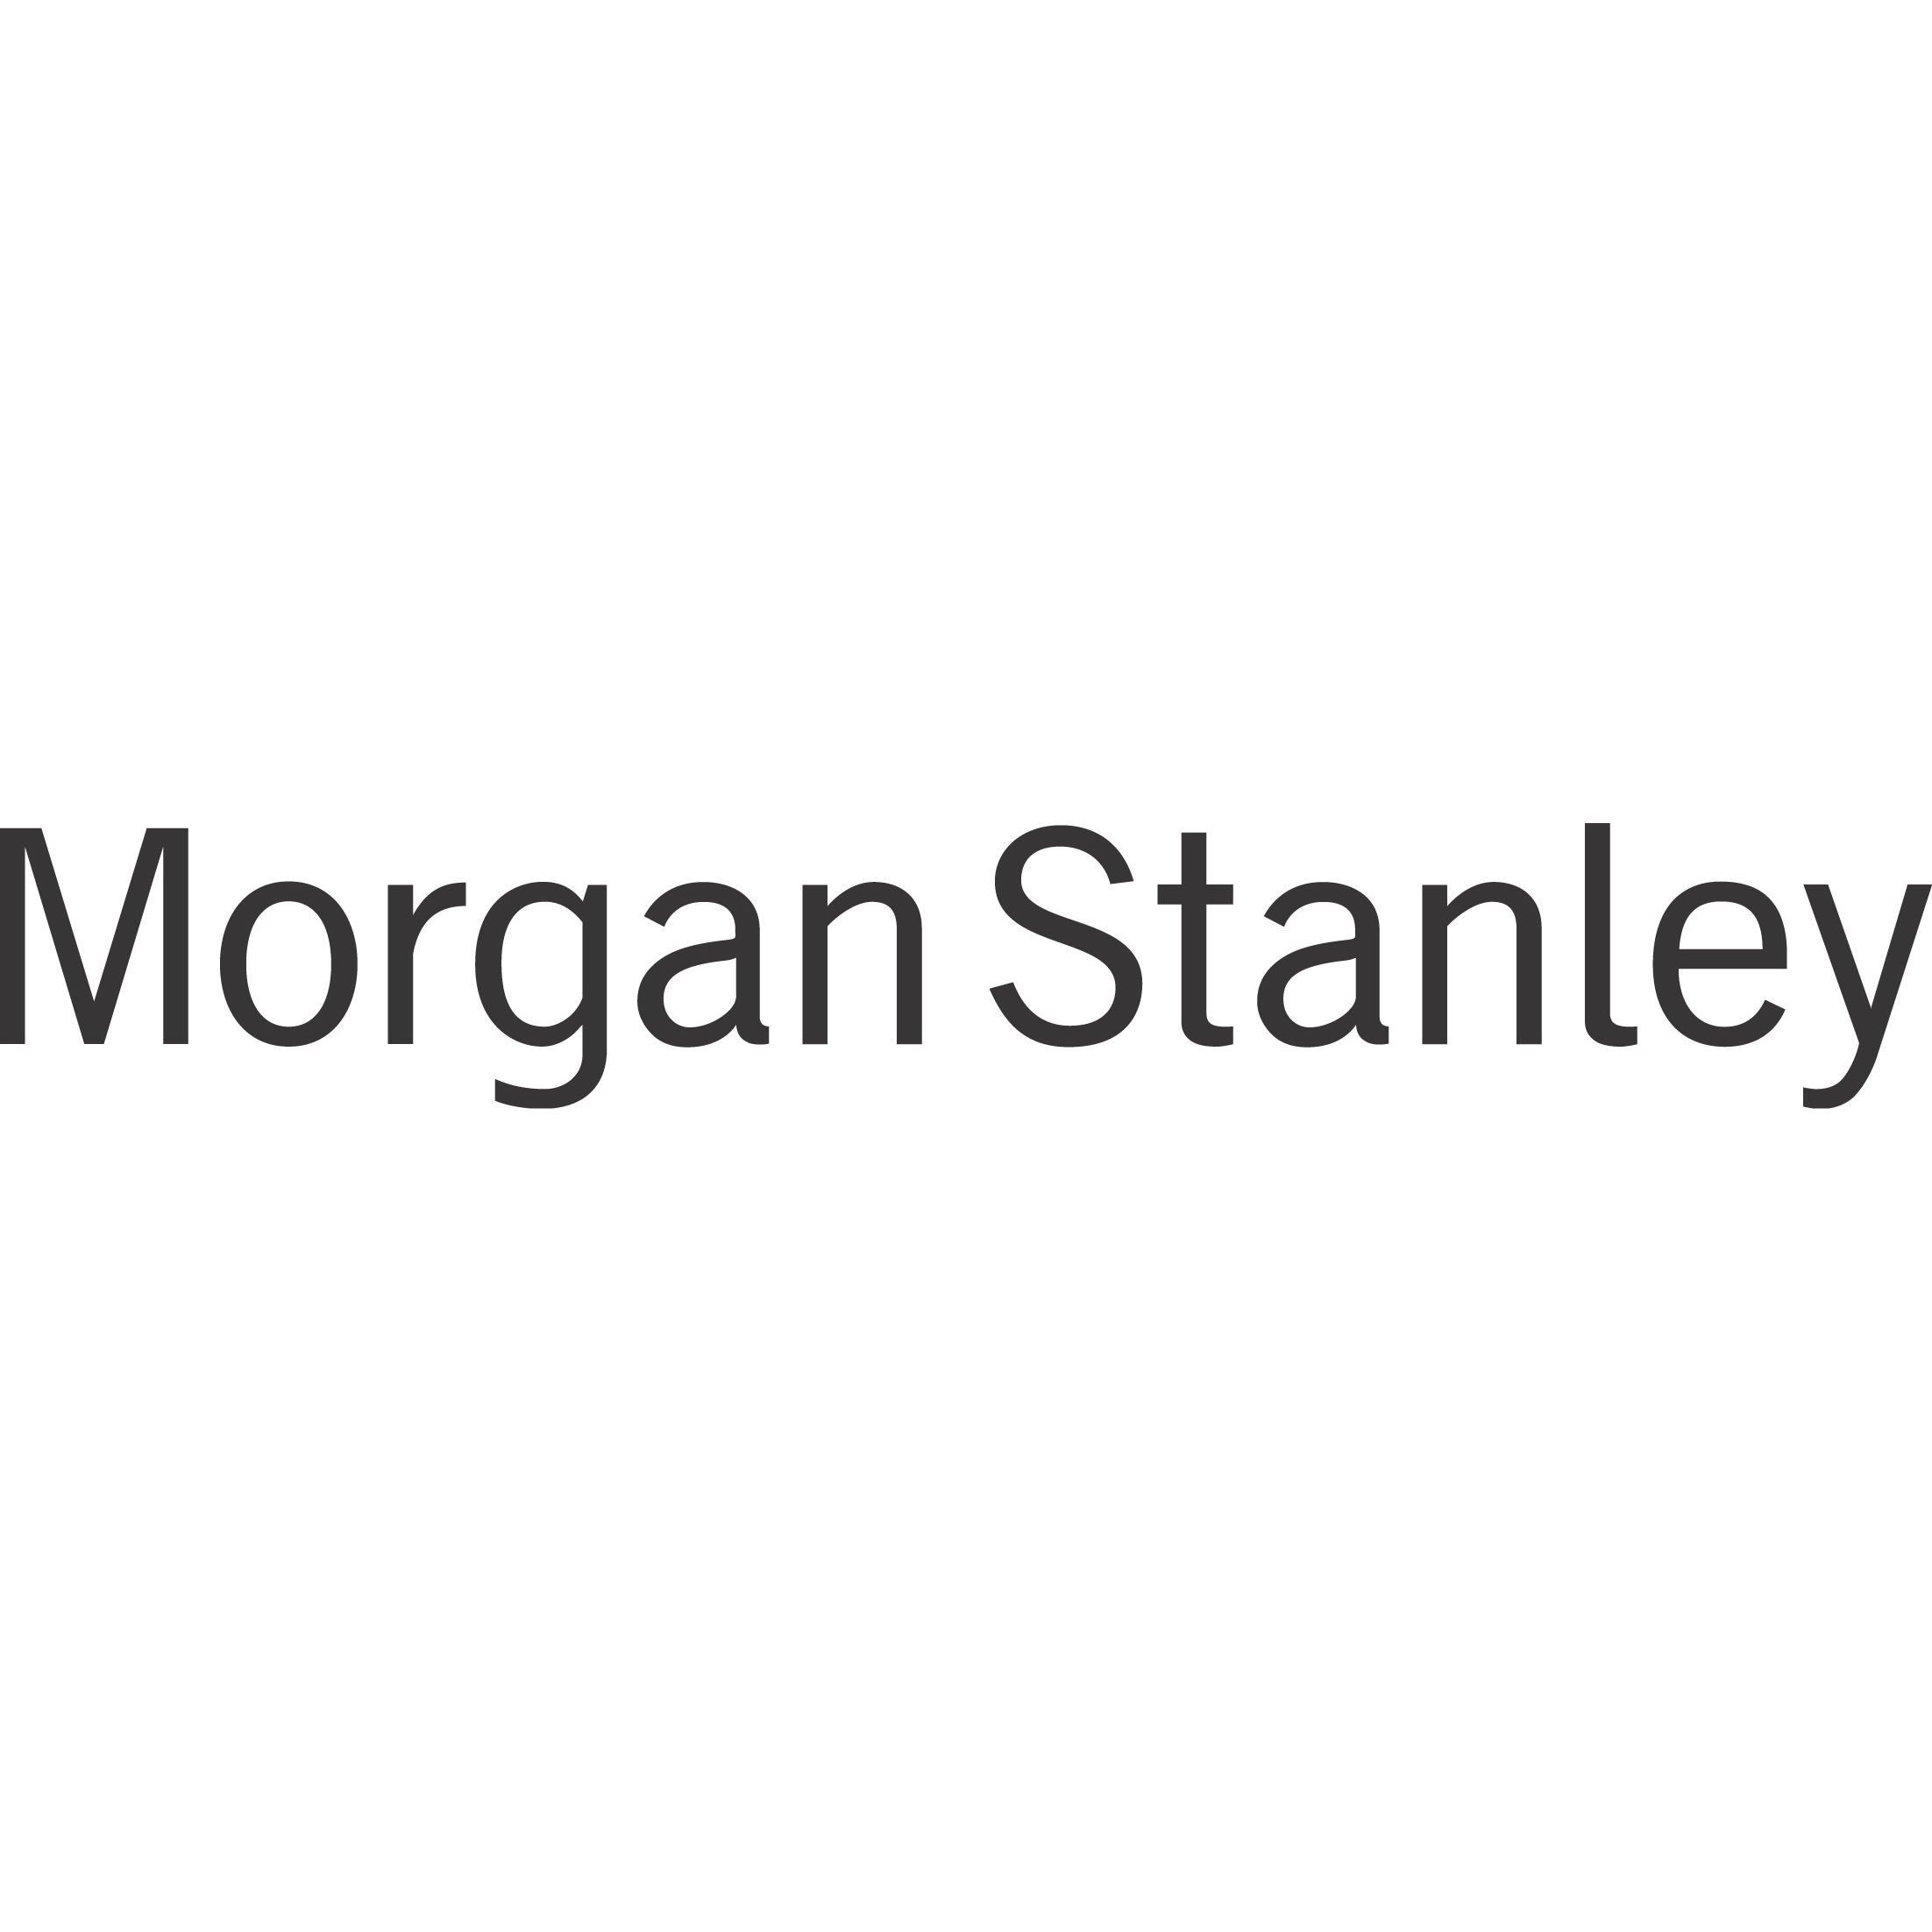 Craig G Zeller - Morgan Stanley | Financial Advisor in Denver,Colorado